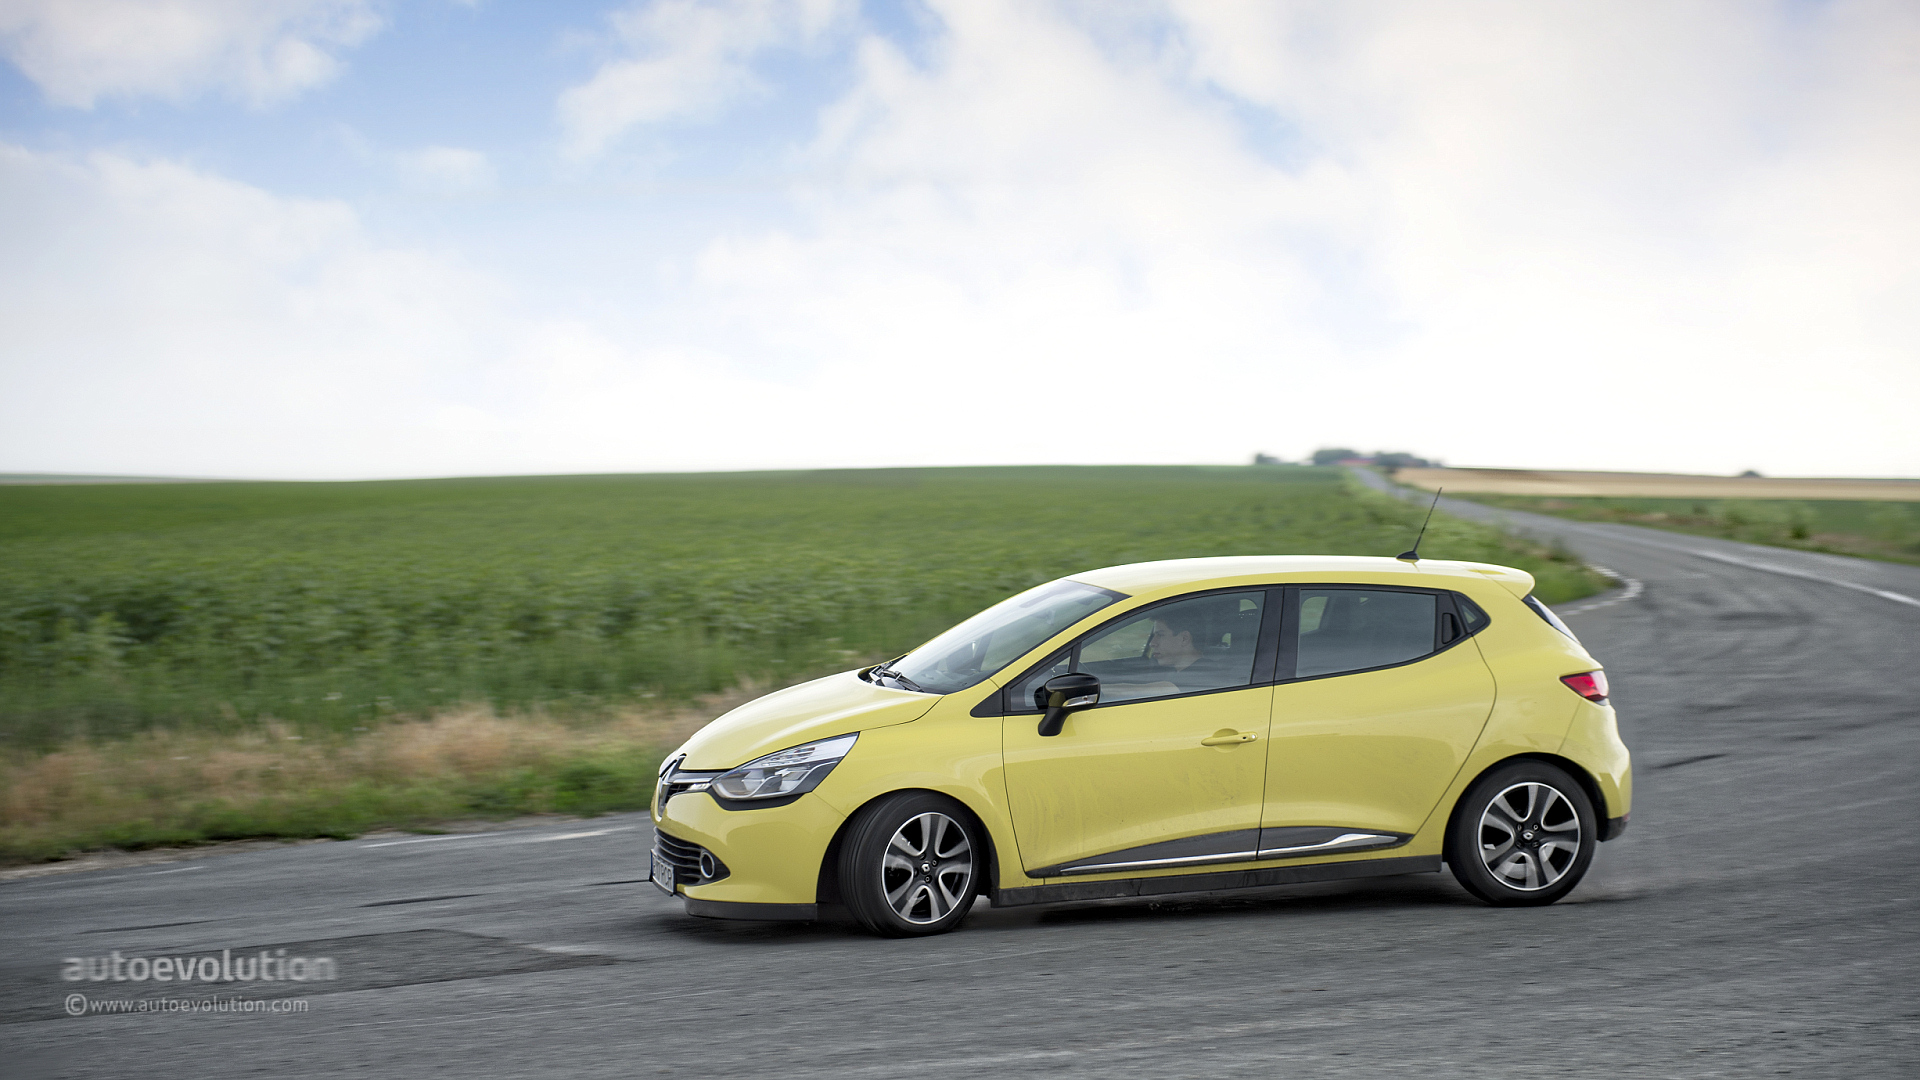 renault clio v could get hybrid assist powertrain from the 2017 renault scenic autoevolution. Black Bedroom Furniture Sets. Home Design Ideas